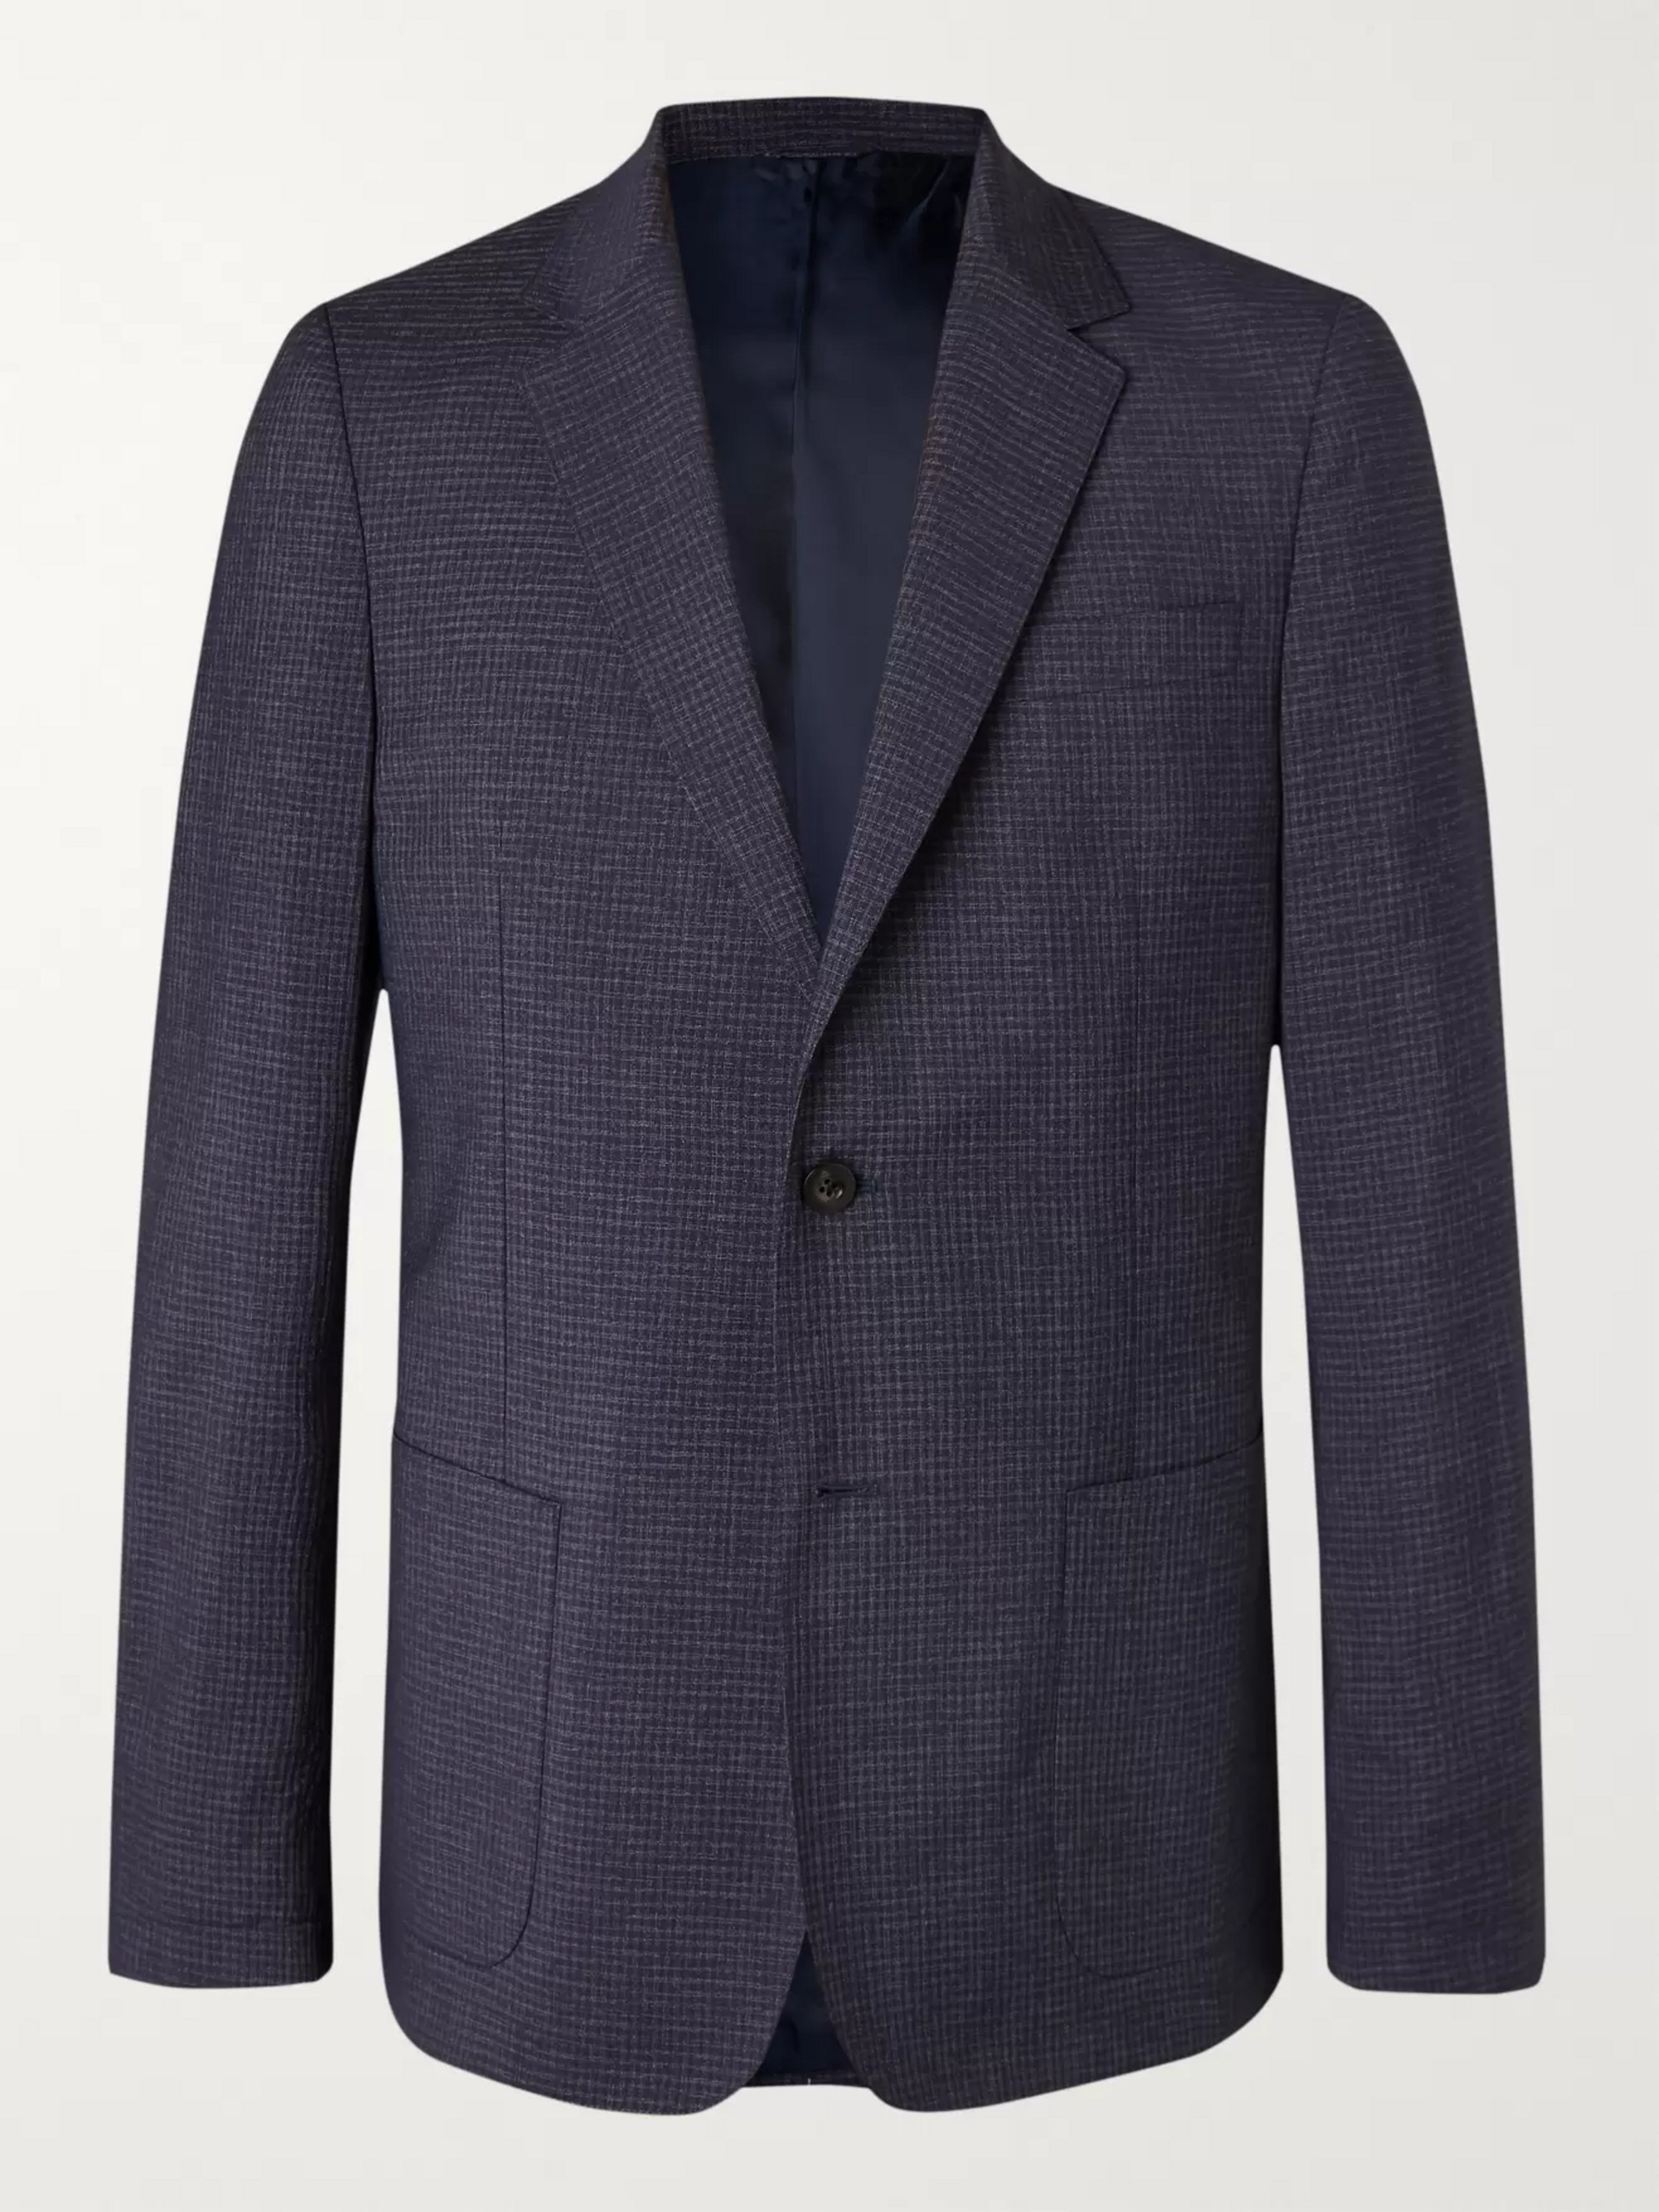 Mr P. Brown Cotton-Twill Blazer